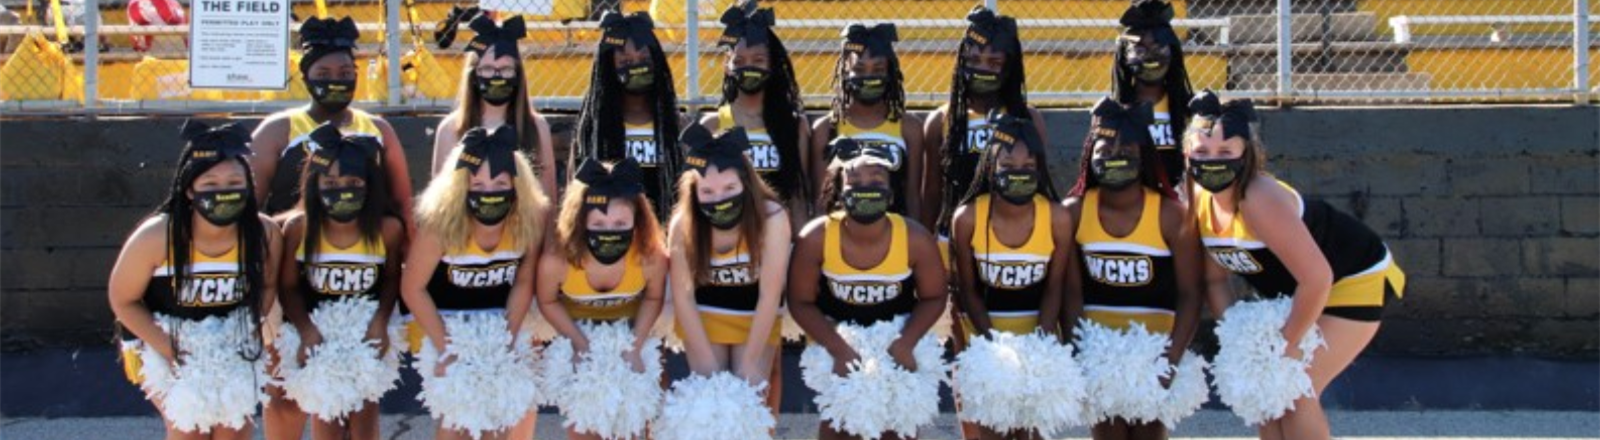 WCMS Spirit Cheerleaders